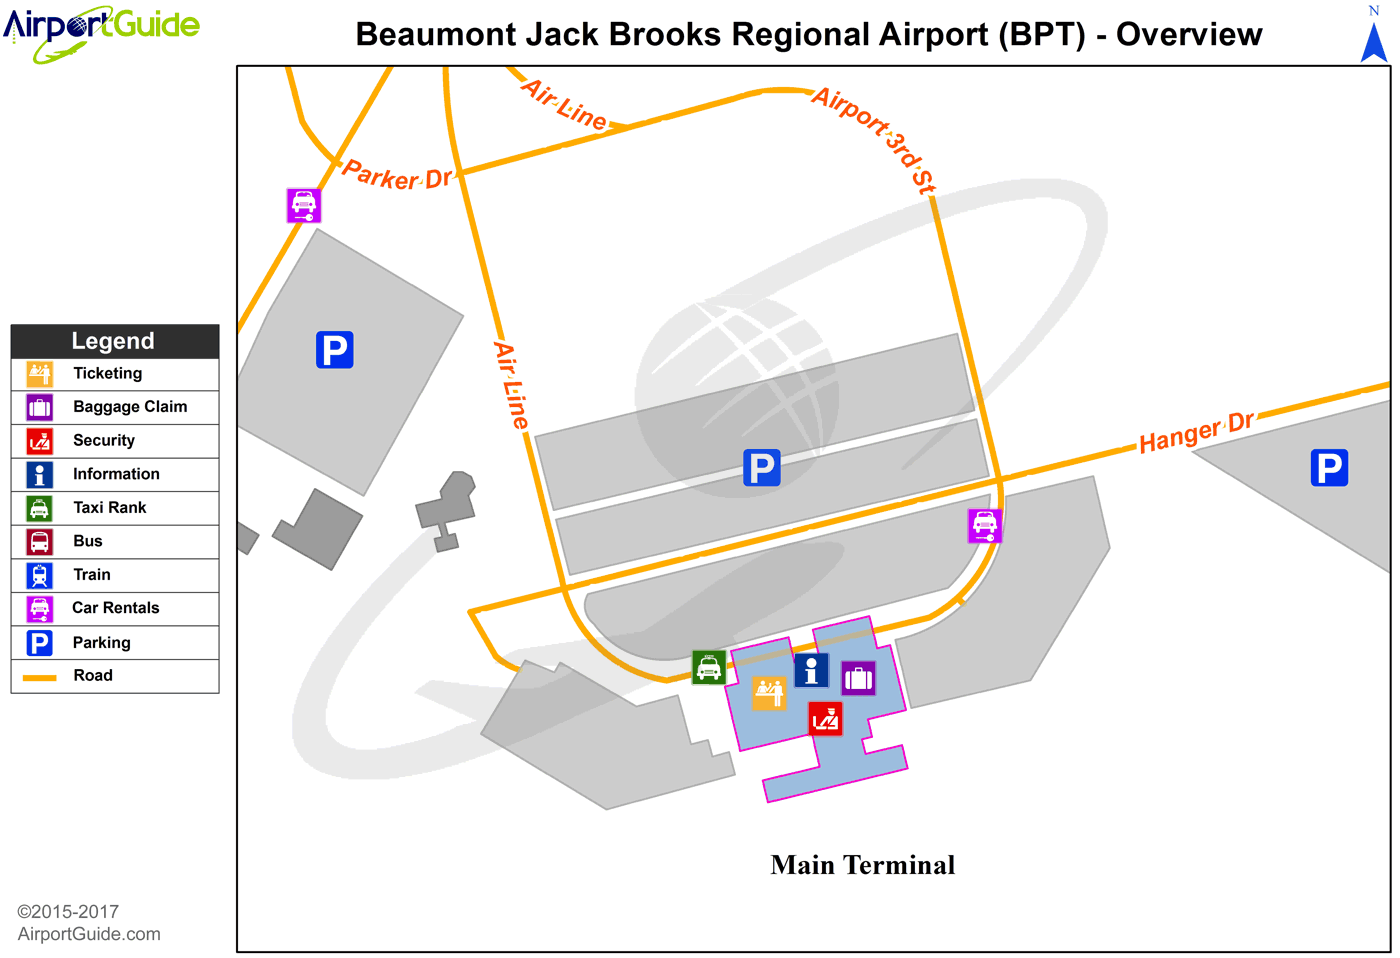 Beaumont/Port Arthur - Jack Brooks Regional (BPT) Airport Terminal Map - Overview